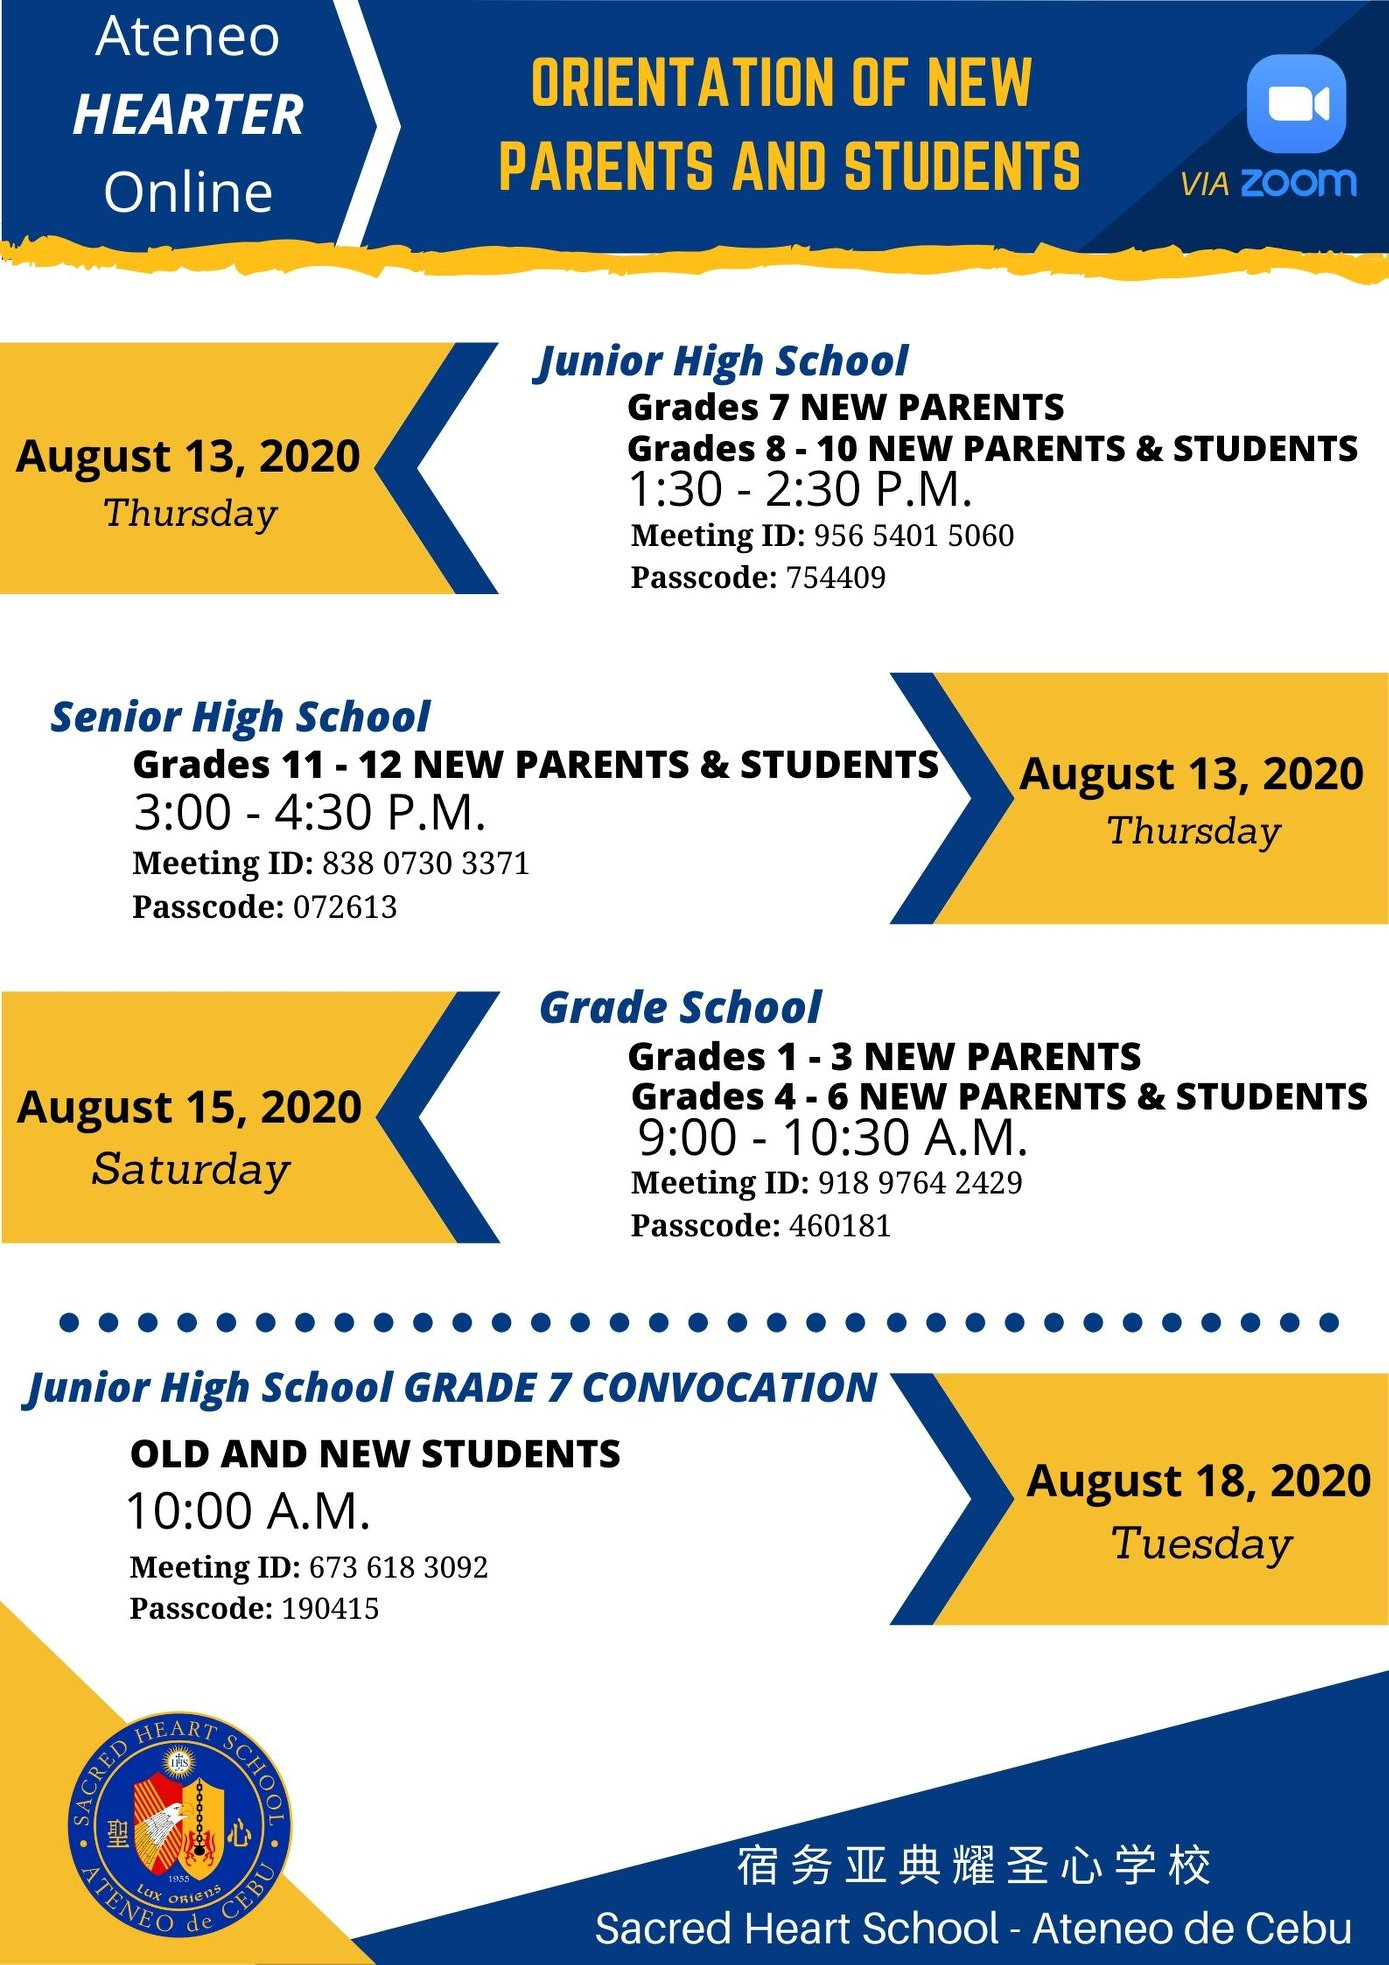 New Parens and Students Orientation